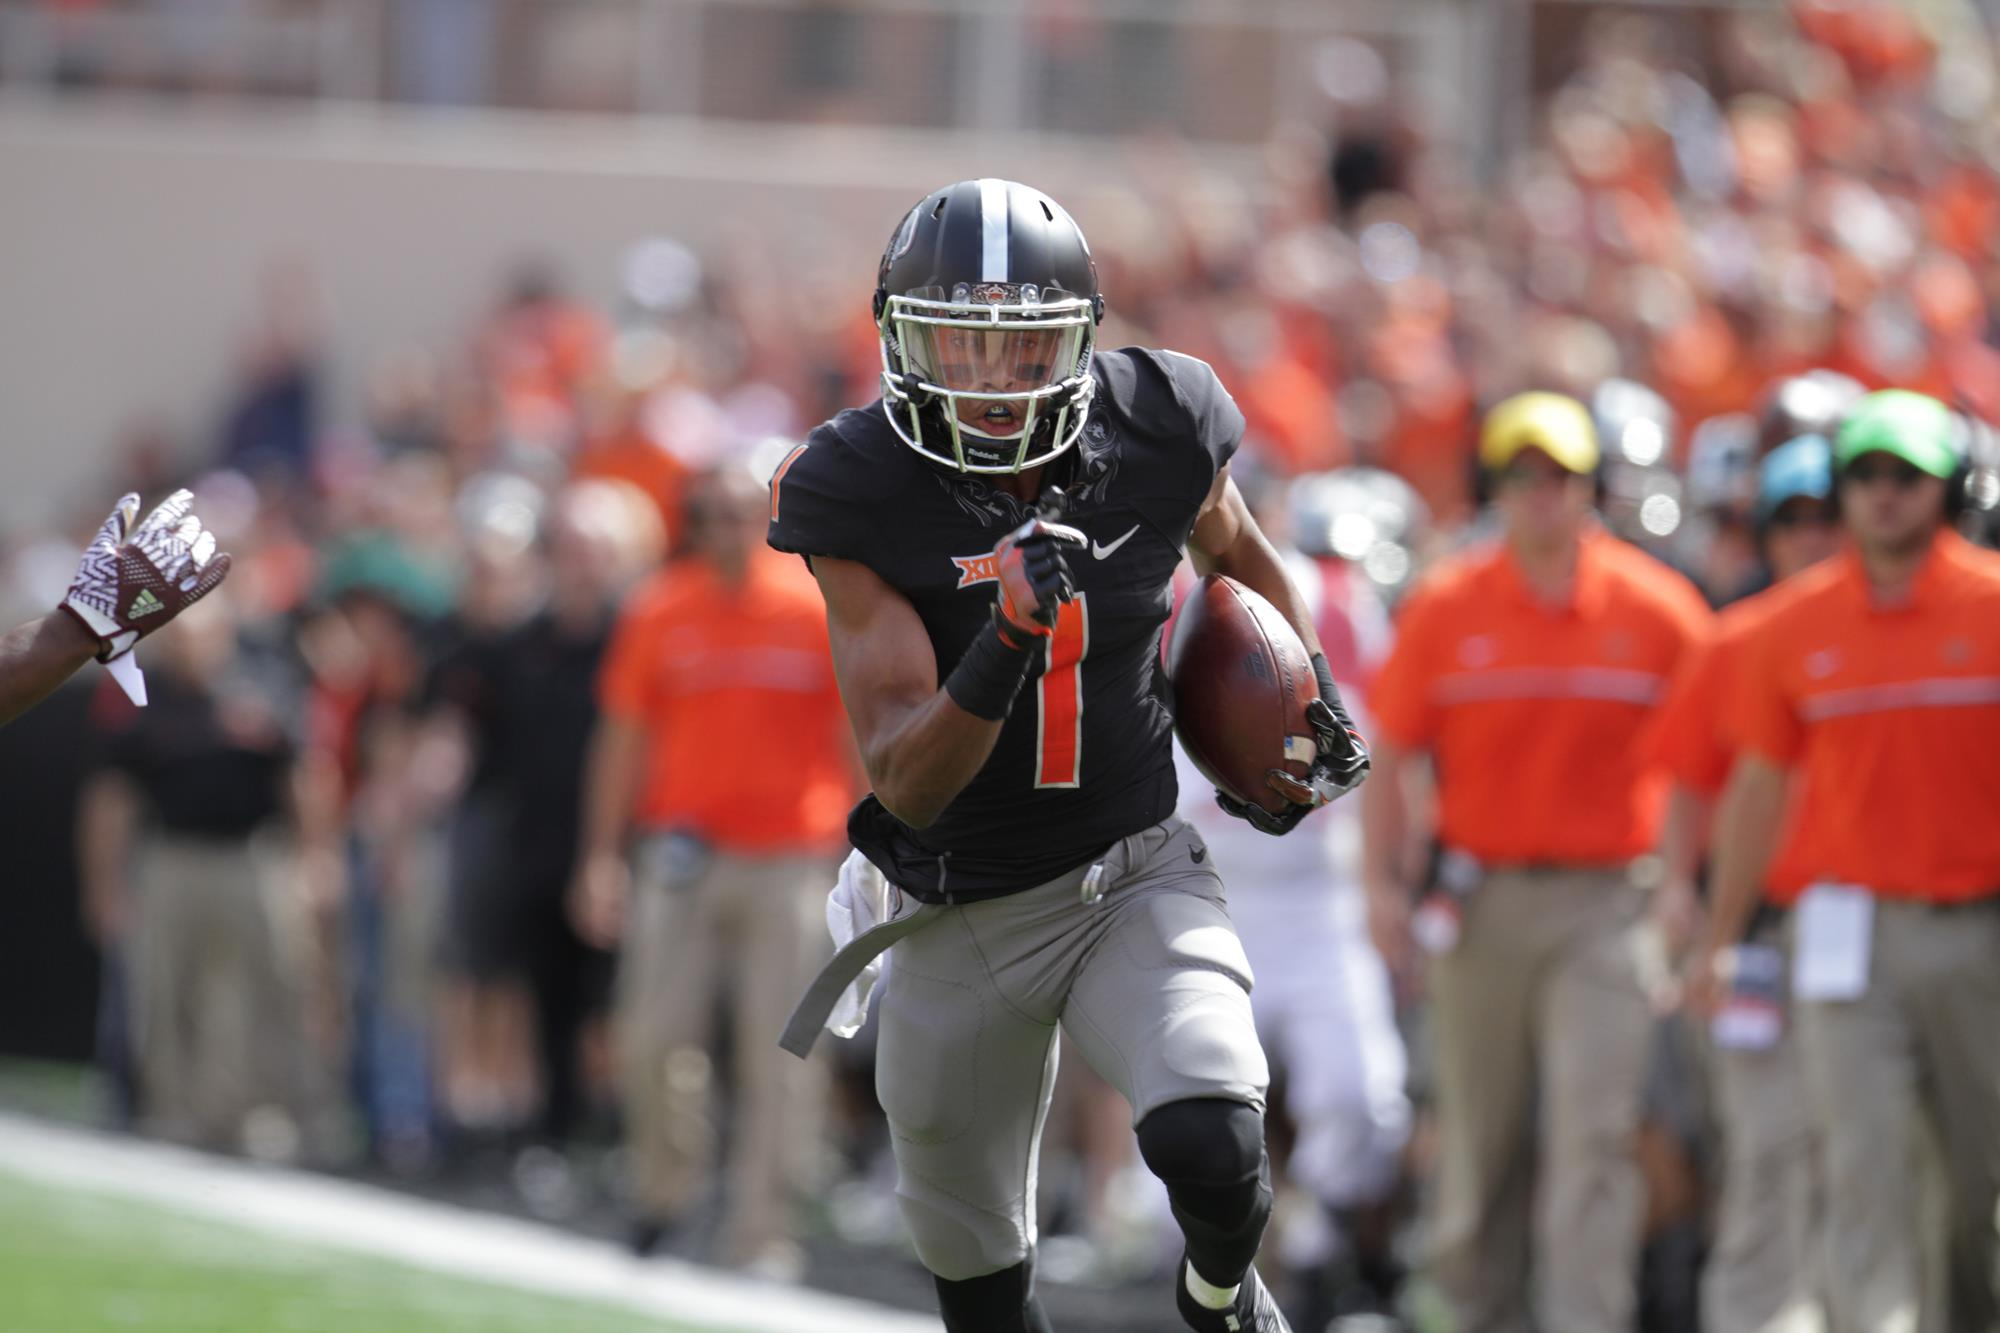 c992ec0e662 Jalen McCleskey - 2017 - Football - Oklahoma State University Athletics